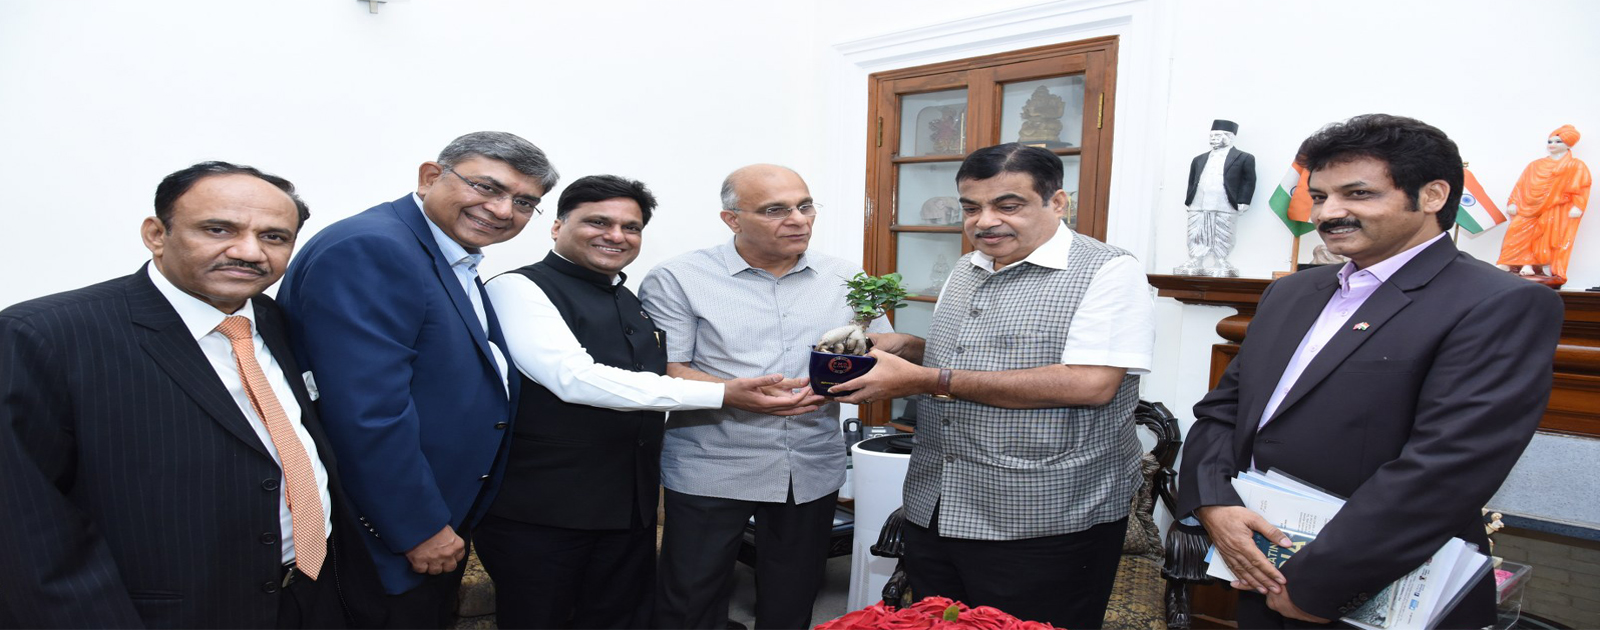 Call on Meeting with Mr Nitin Gadkari, Hon'ble Union Minister of Road Transport and Highways and Minister of Micro, Small and Medium Enterprises, Government of India